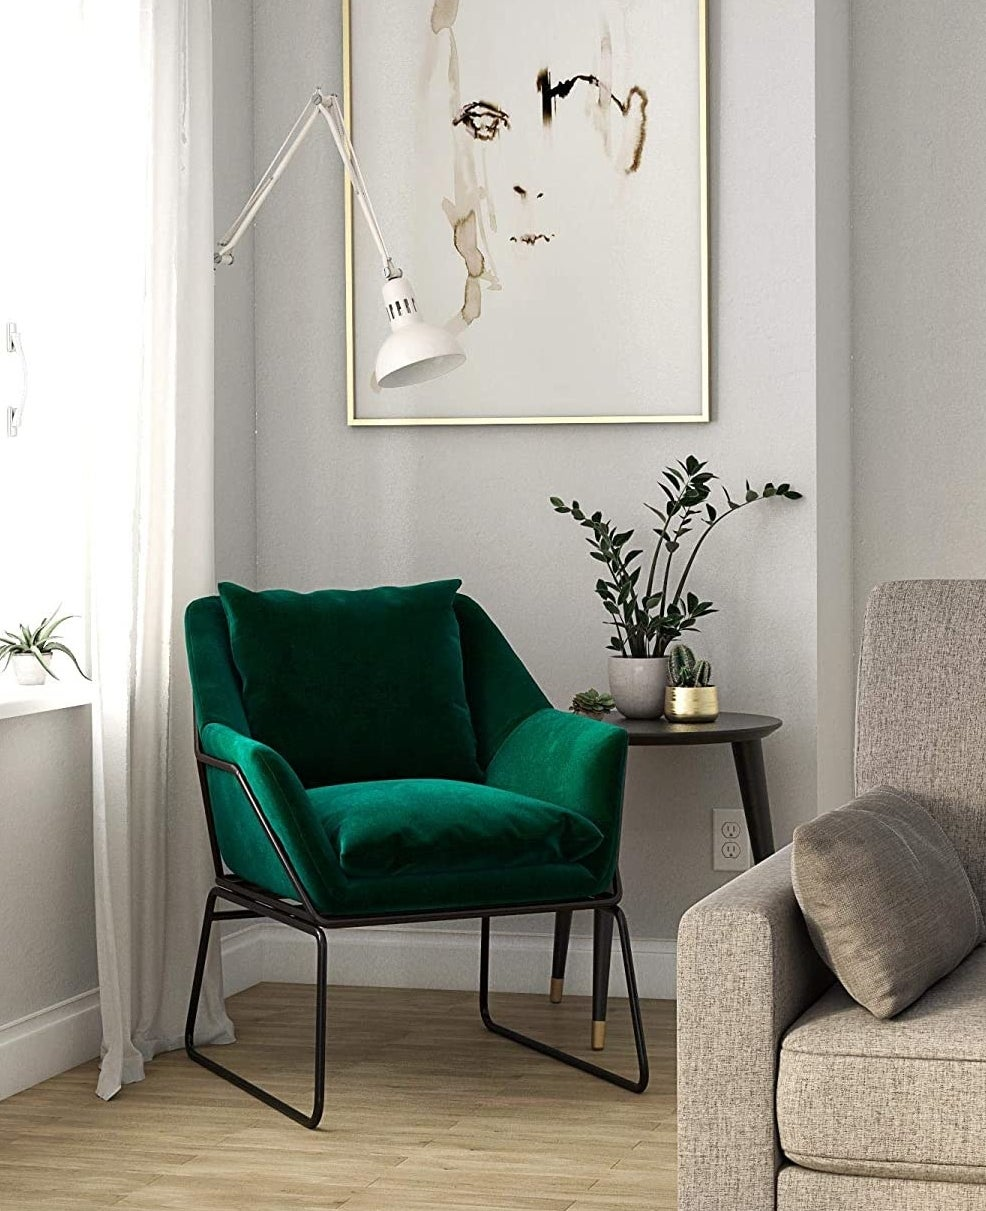 Green velvet chair with back pillow and black metal frame in a living room.